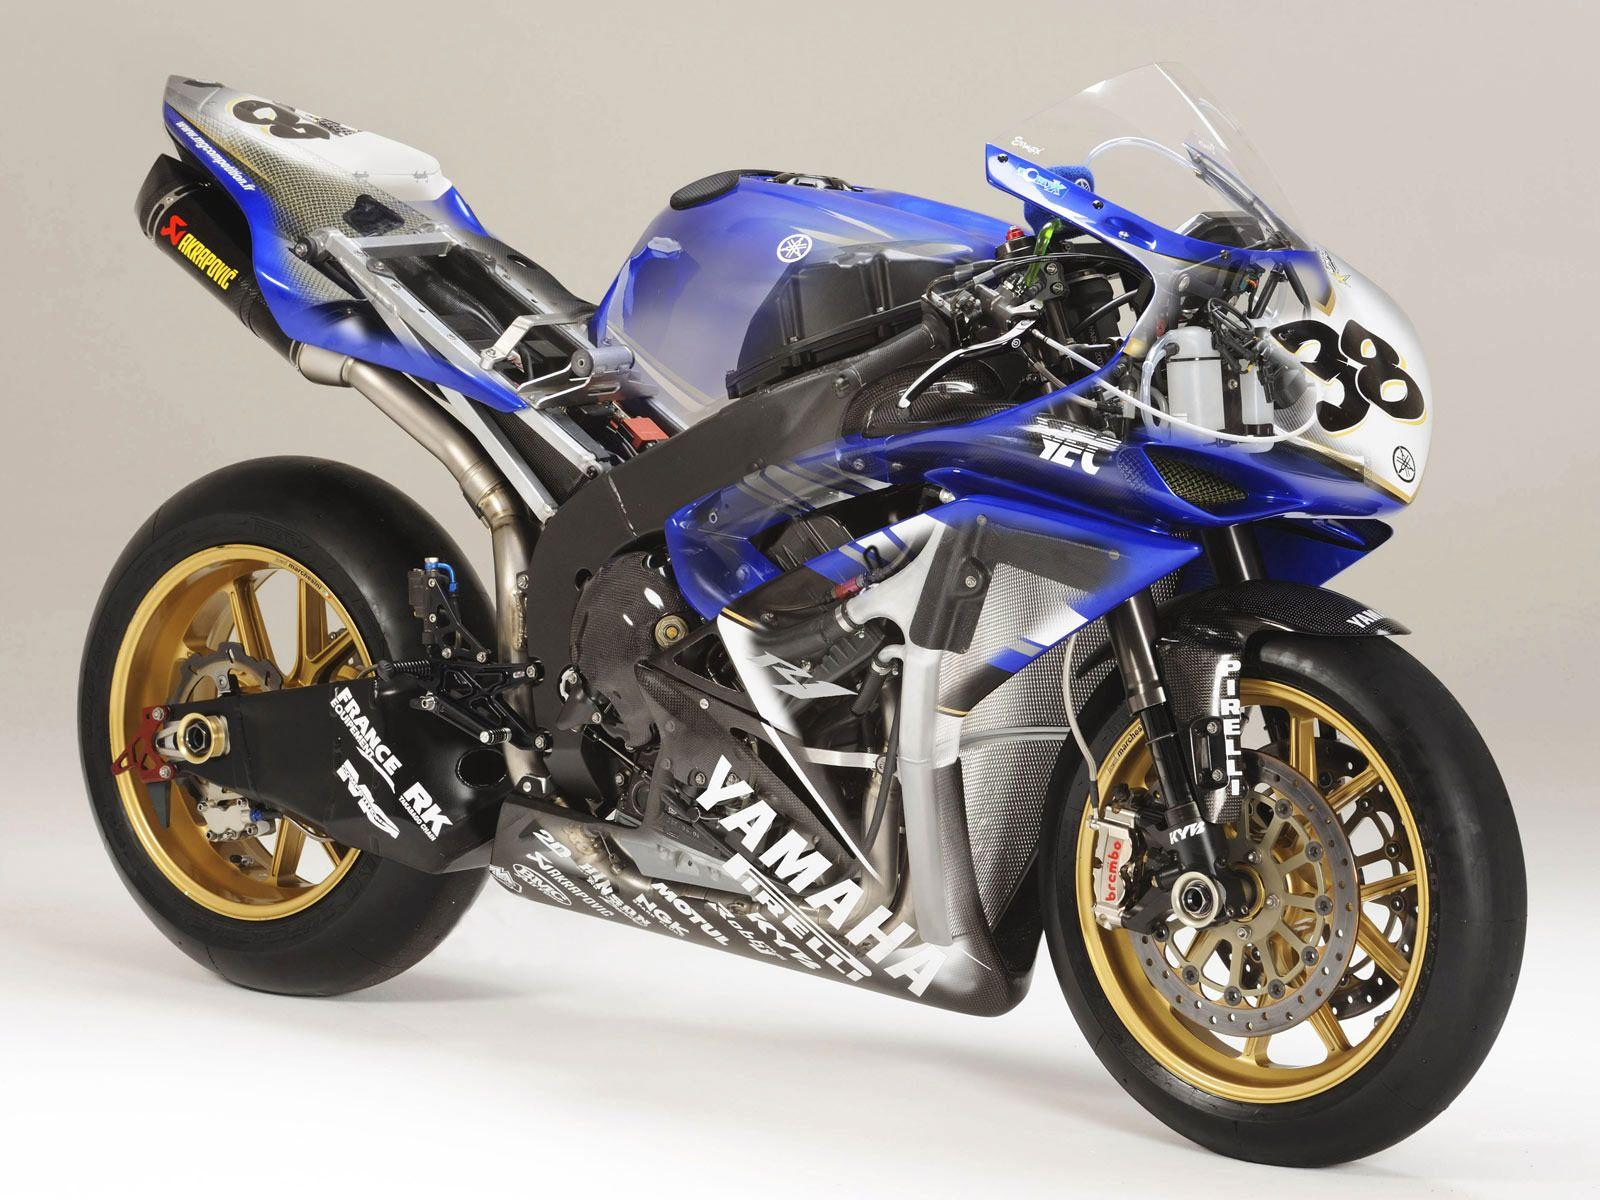 YZF R1 Yamaha pictures 2008 specifications